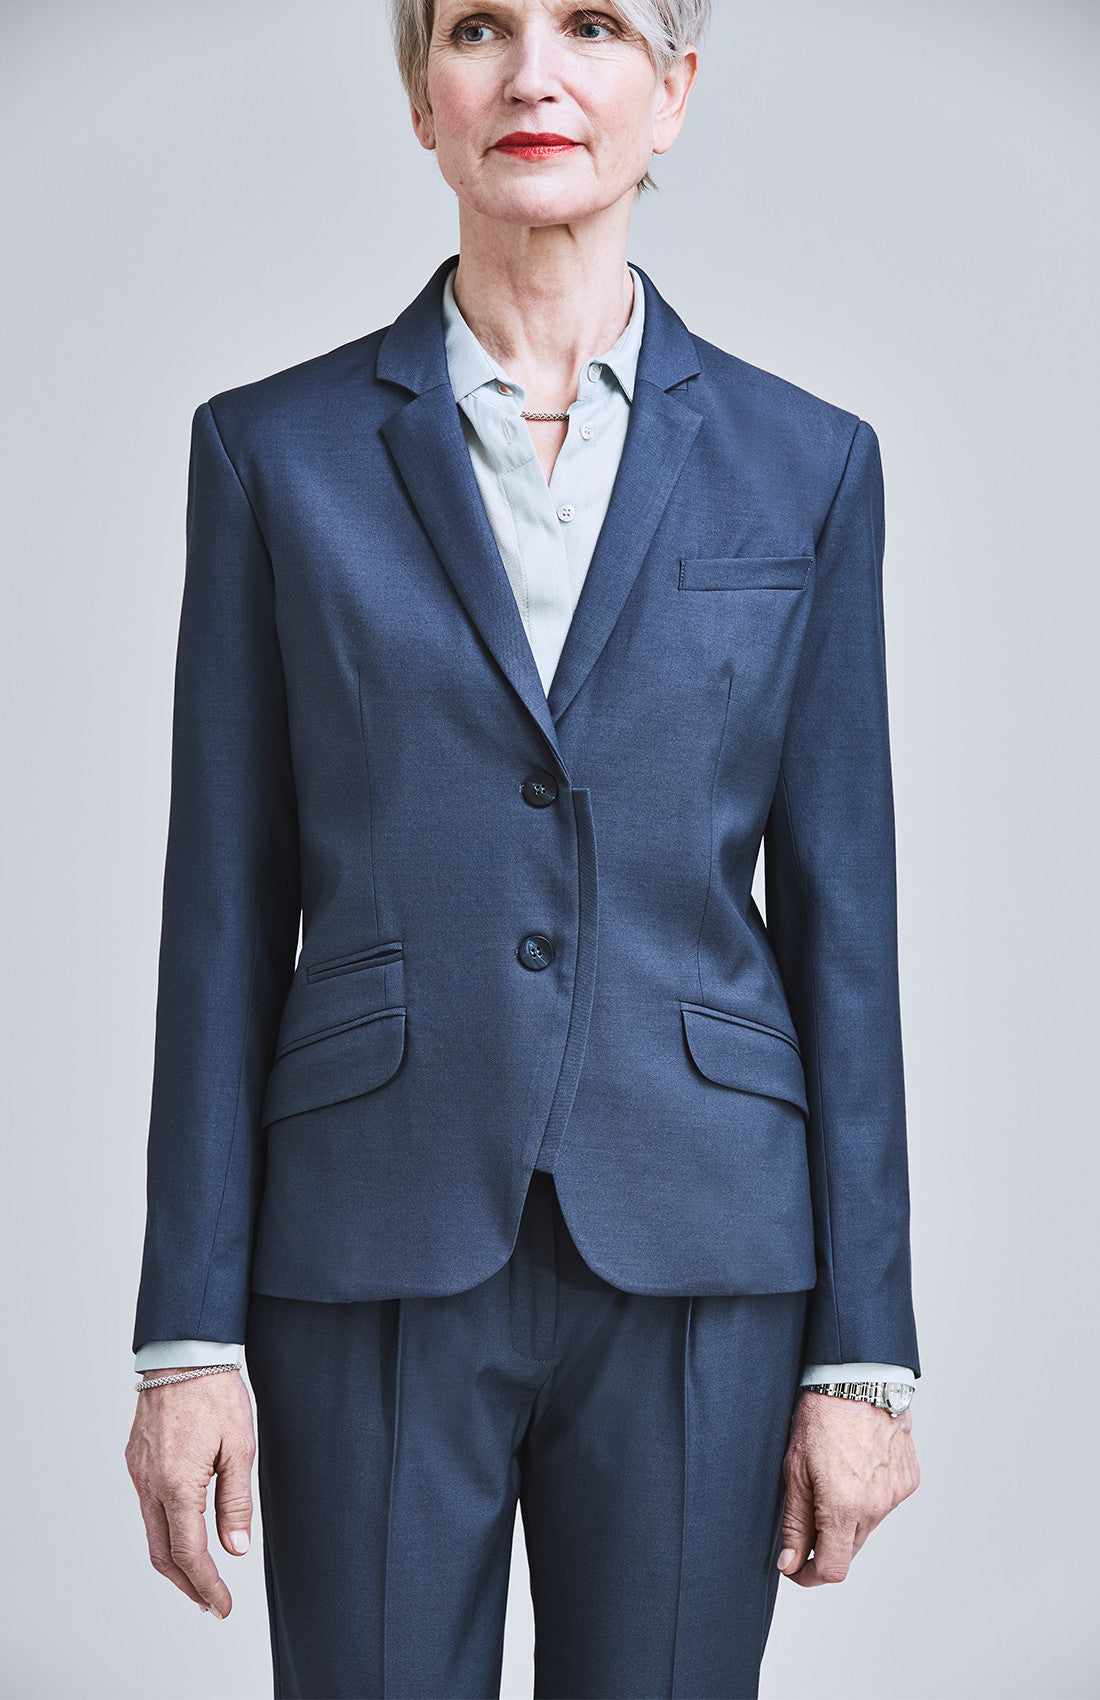 Women's luxury Savile Row style tailored suit jacket for the office blue